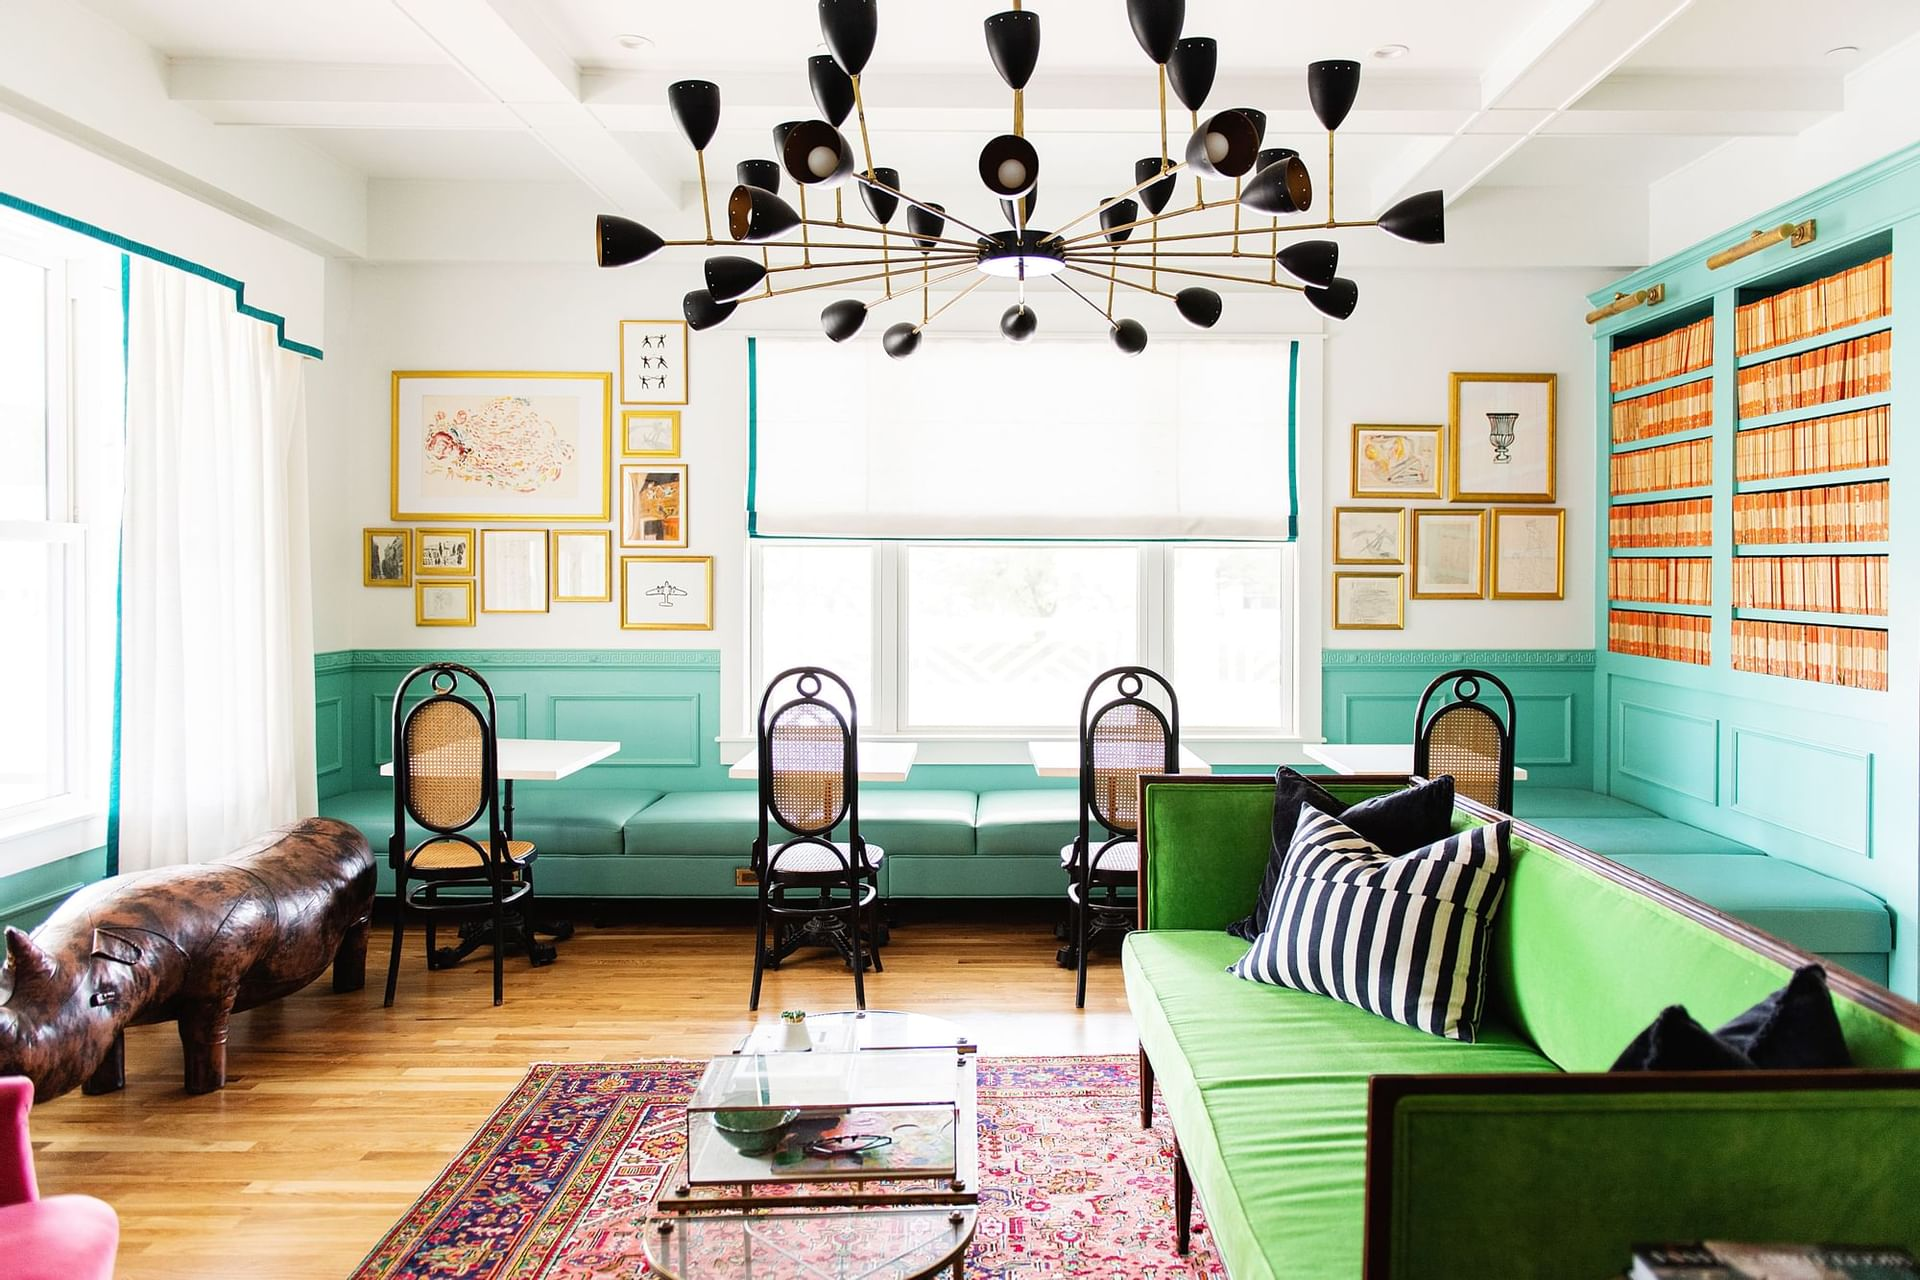 spacious room with blue walls, green couch and chairs